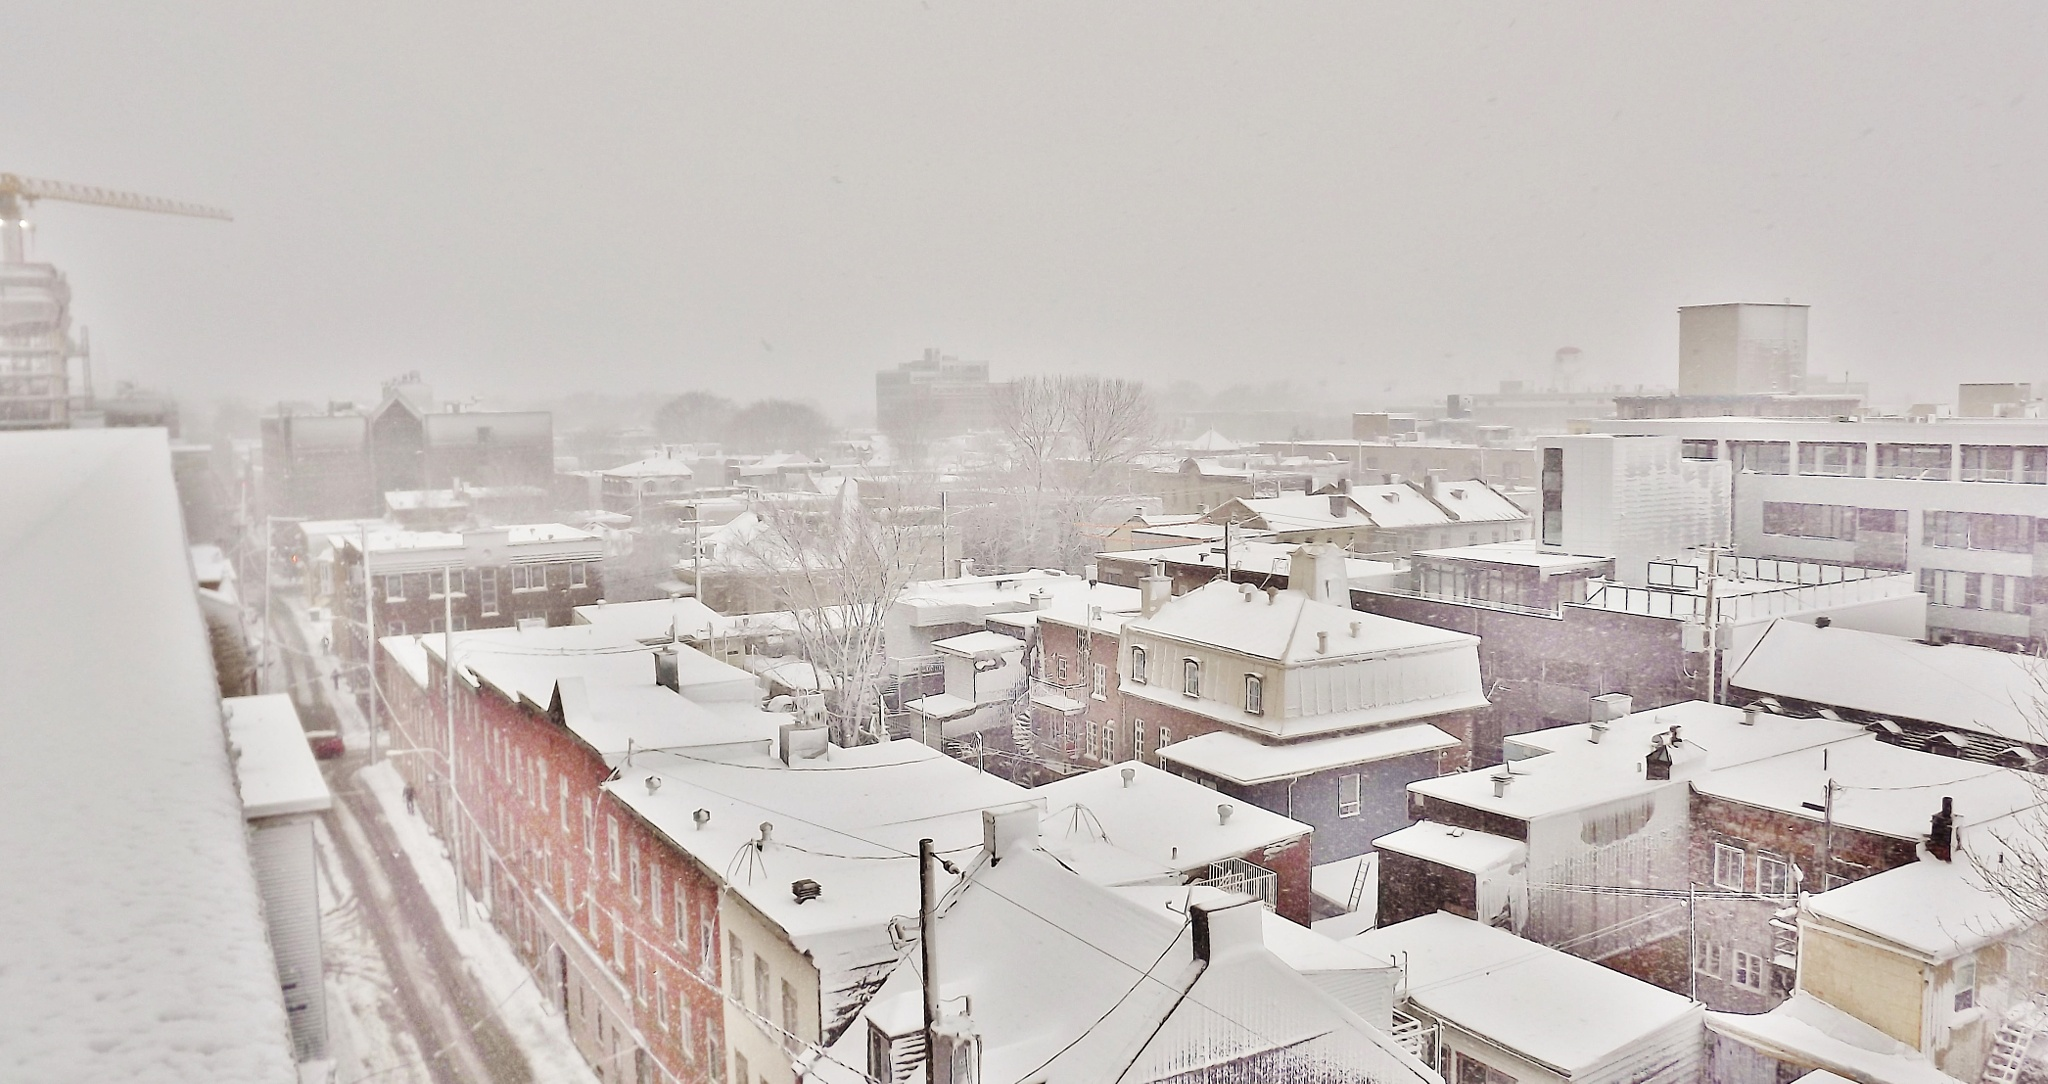 Snowy day by real.michaud.5036